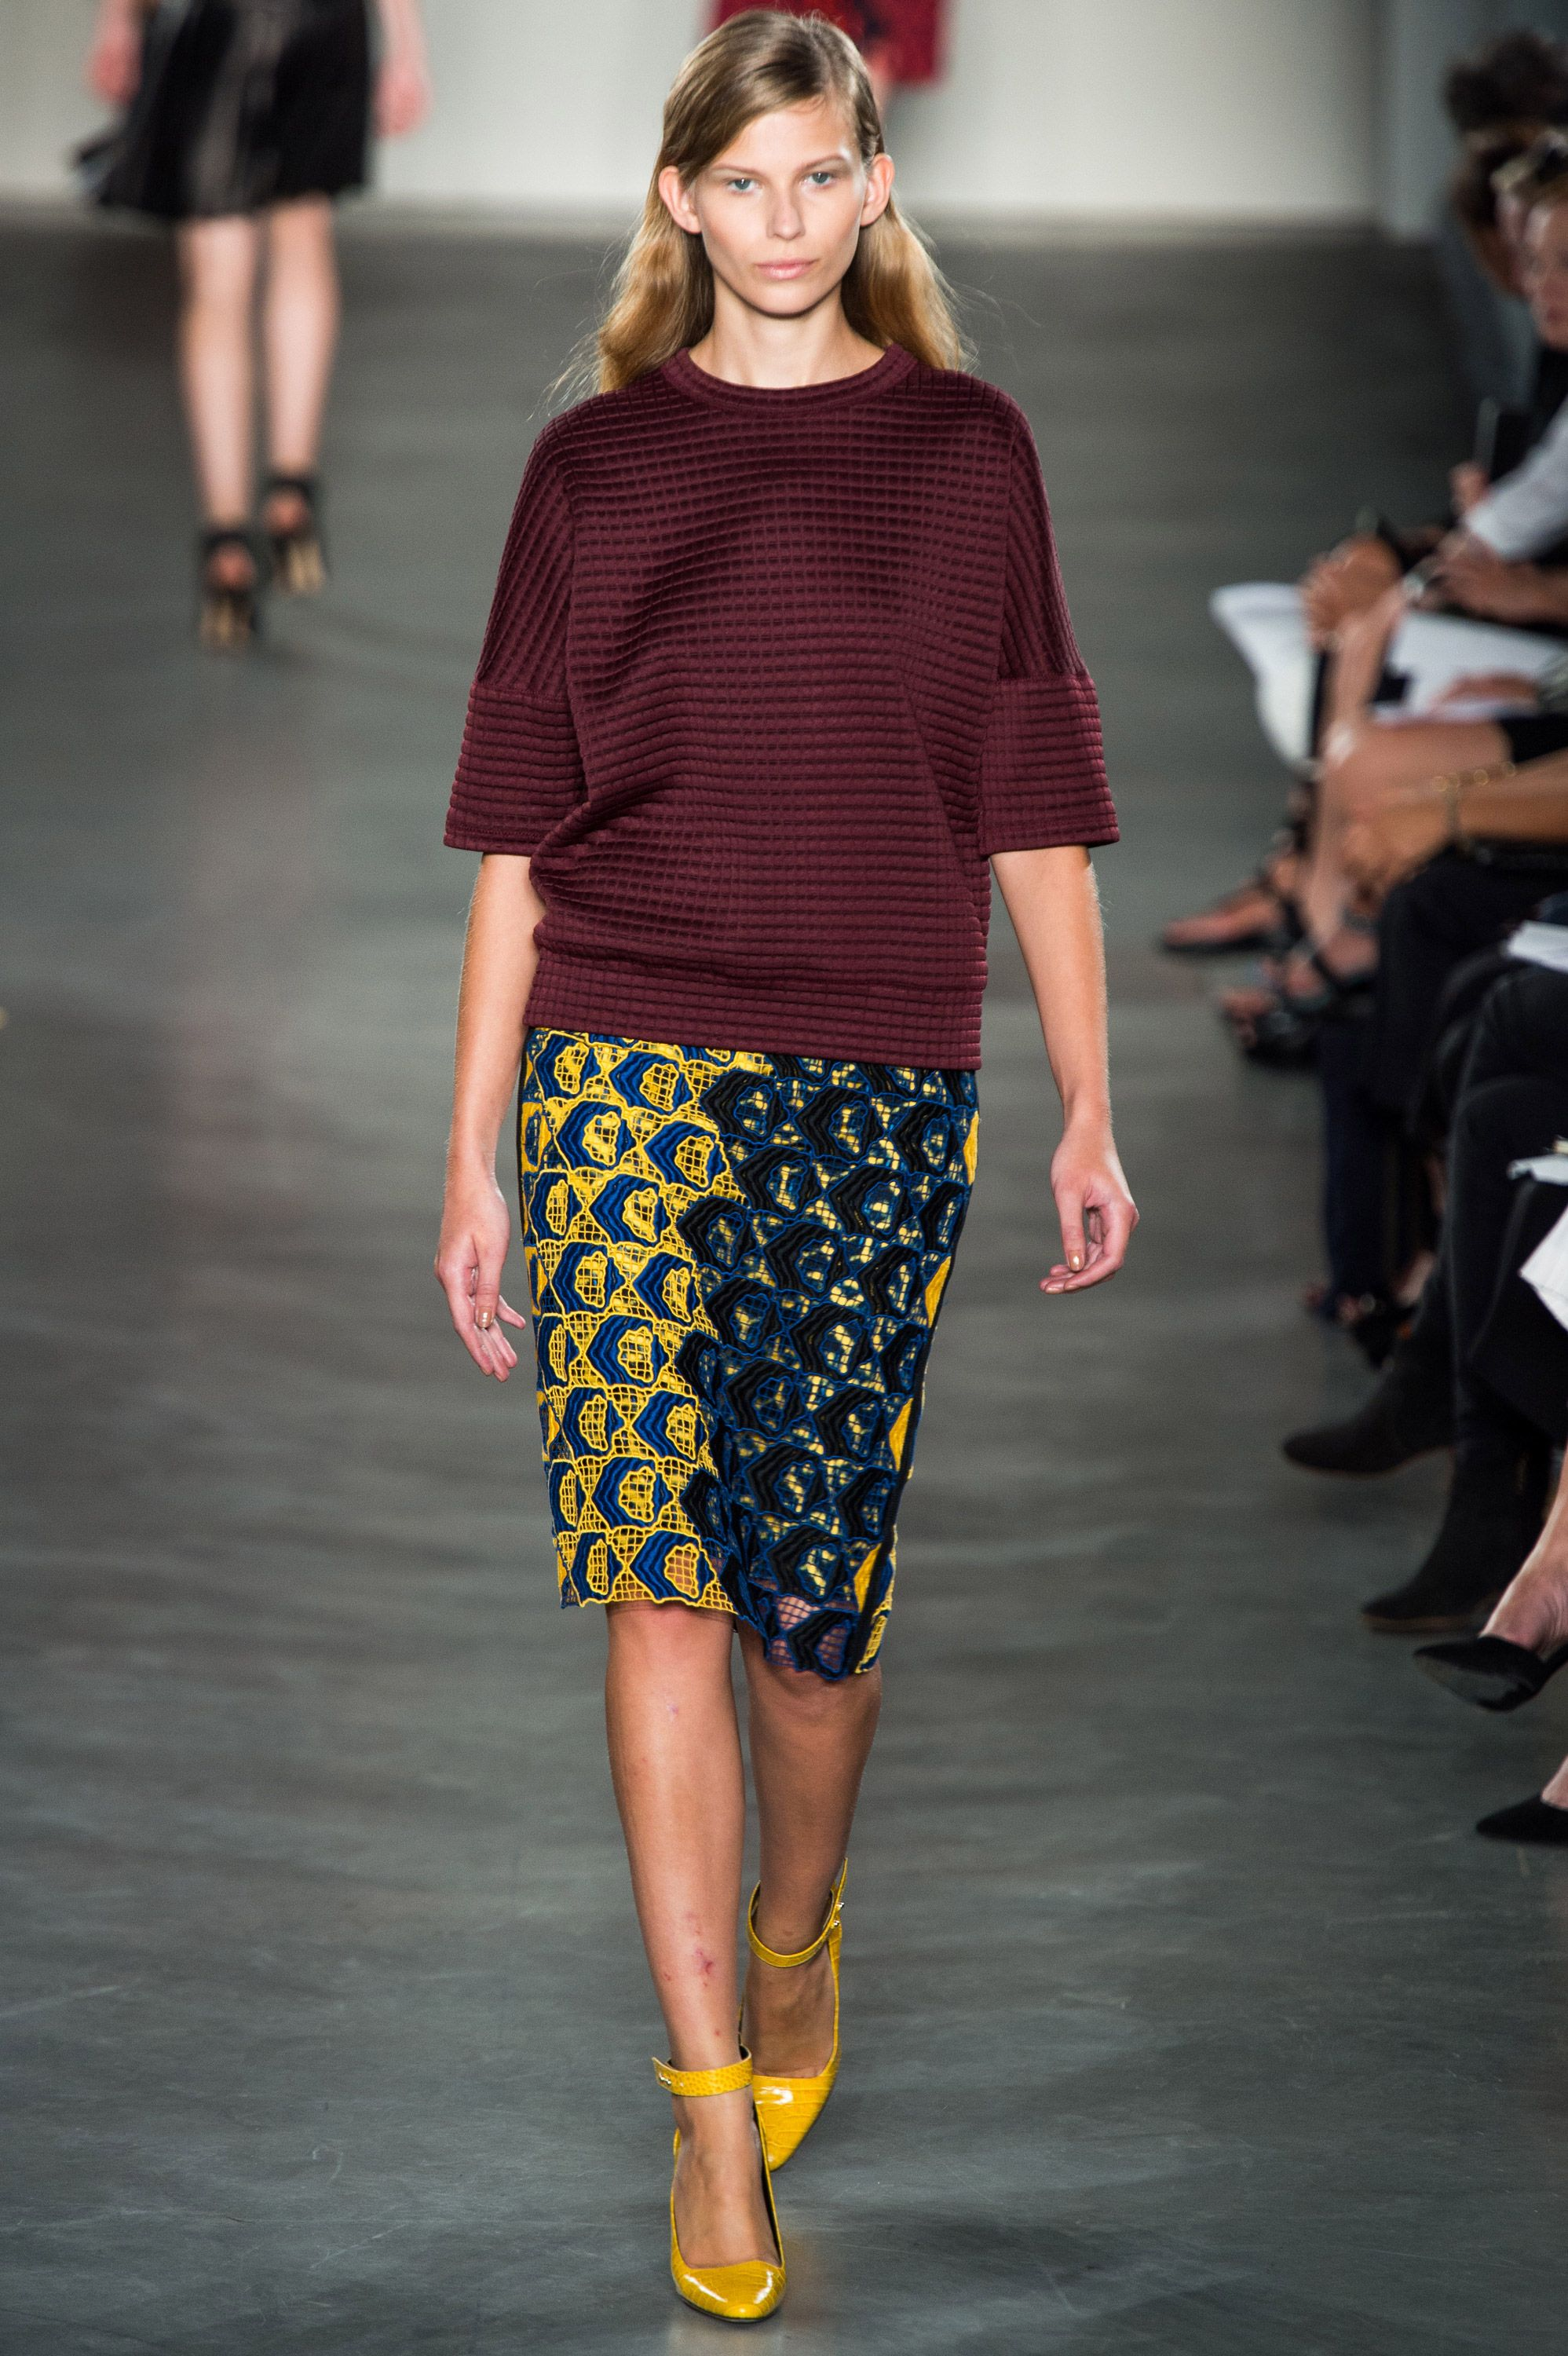 Derek Lam SpringSummer 2013 RTW – New York Fashion Week